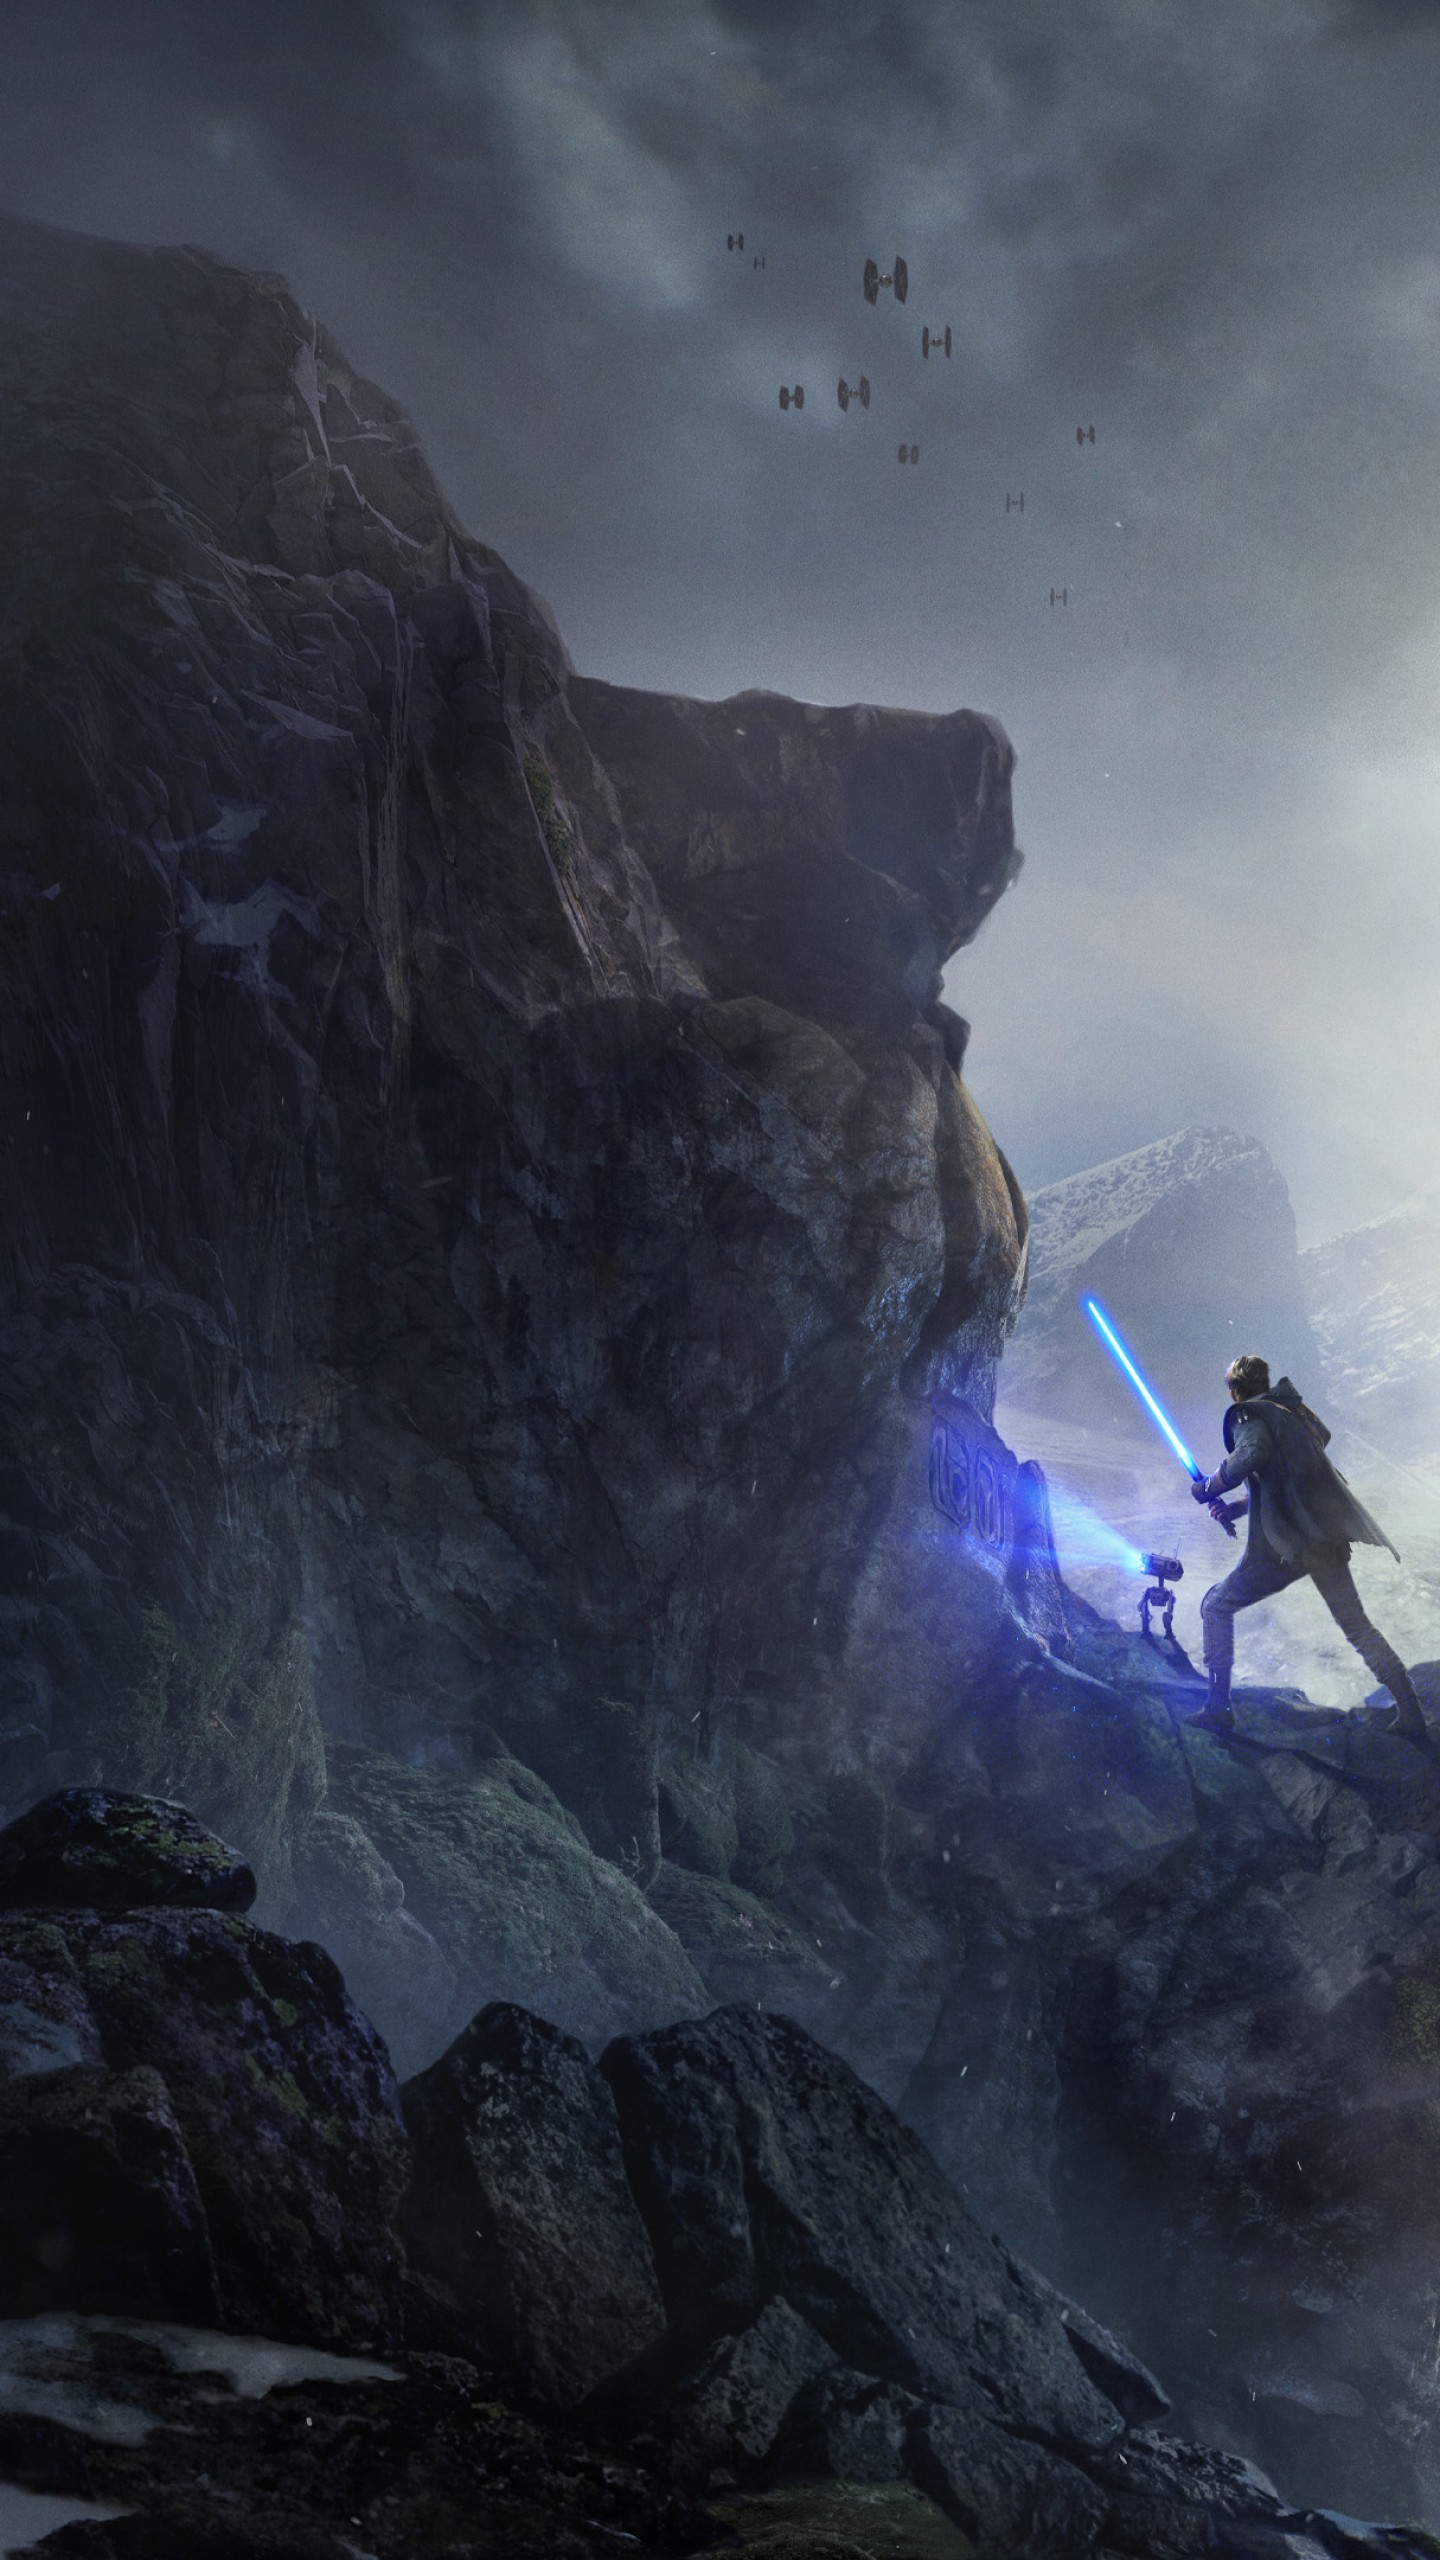 Star Wars Jedi Fallen Order Wallpaper Posted By Samantha Sellers